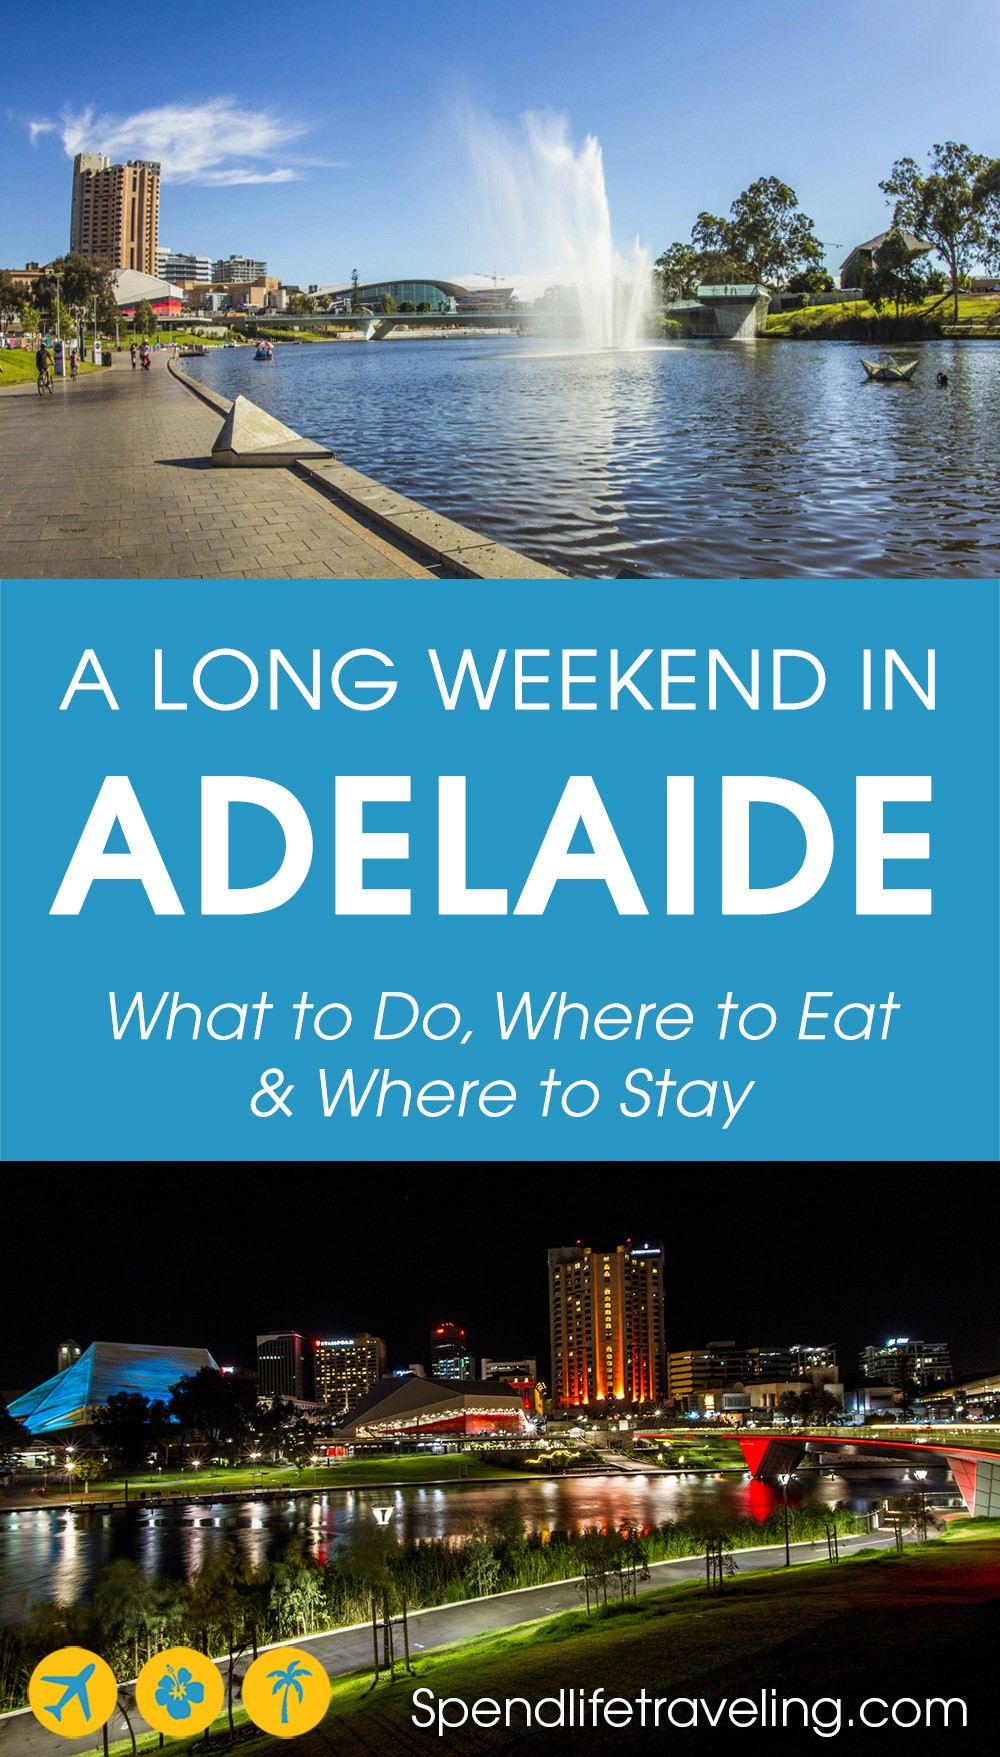 A detailed 3-day itinerary for the perfect long weekend in #Adelaide, Australia - insider tips. #travelguide #citybreak #SouthAustralia